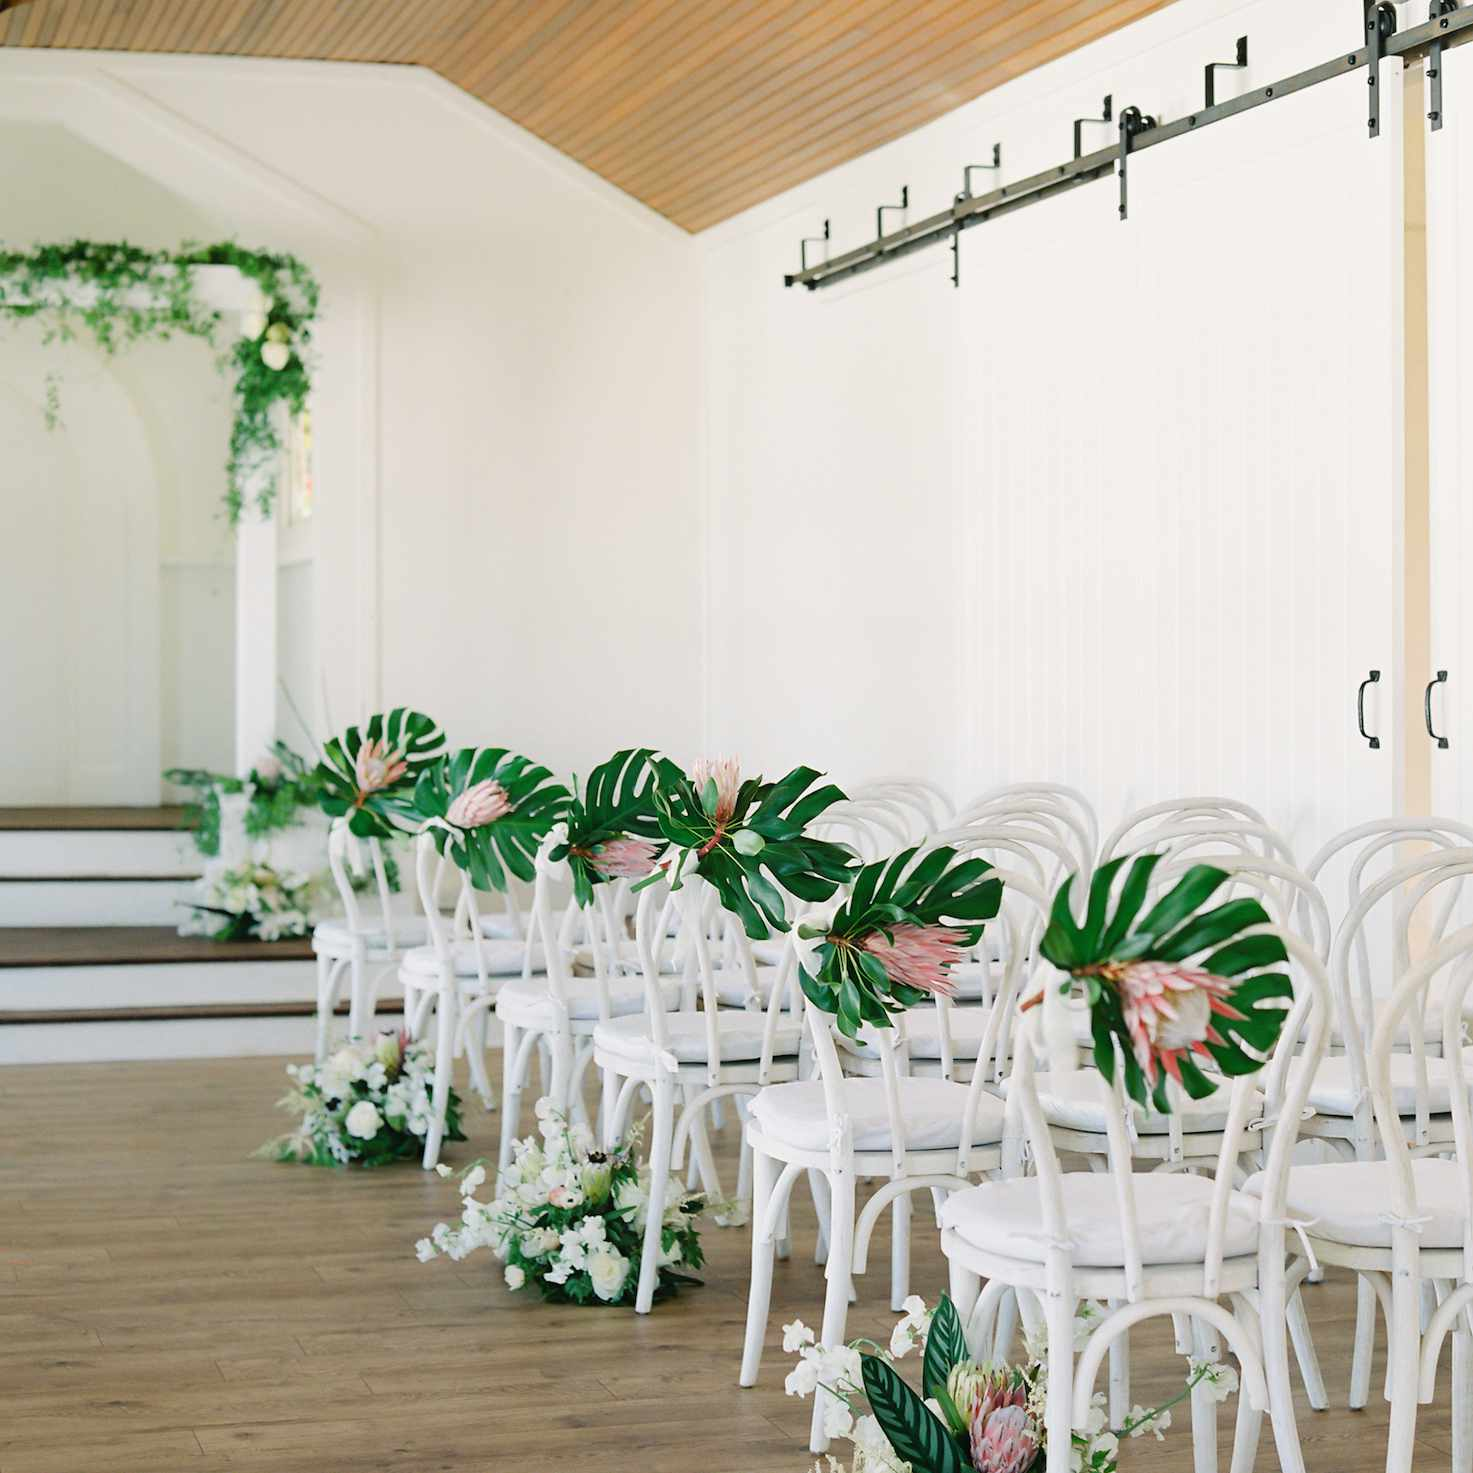 Ceremony aisle with monstera leaf and protea arrangements on chairs